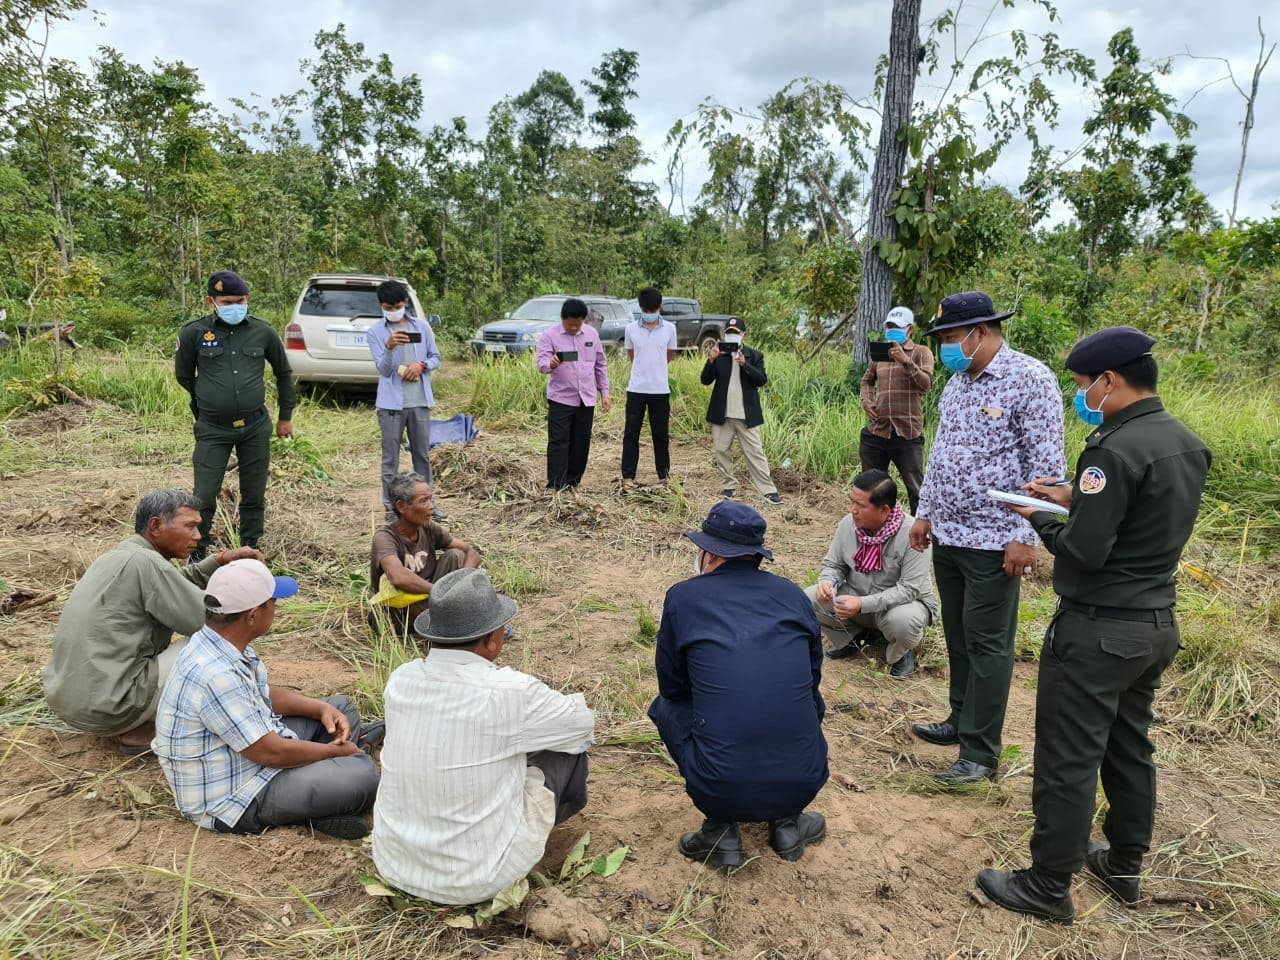 Kratie authorities investigate potential land clearing in the province on December 2, in relation to which three journalists were charged for extortion. Supplies